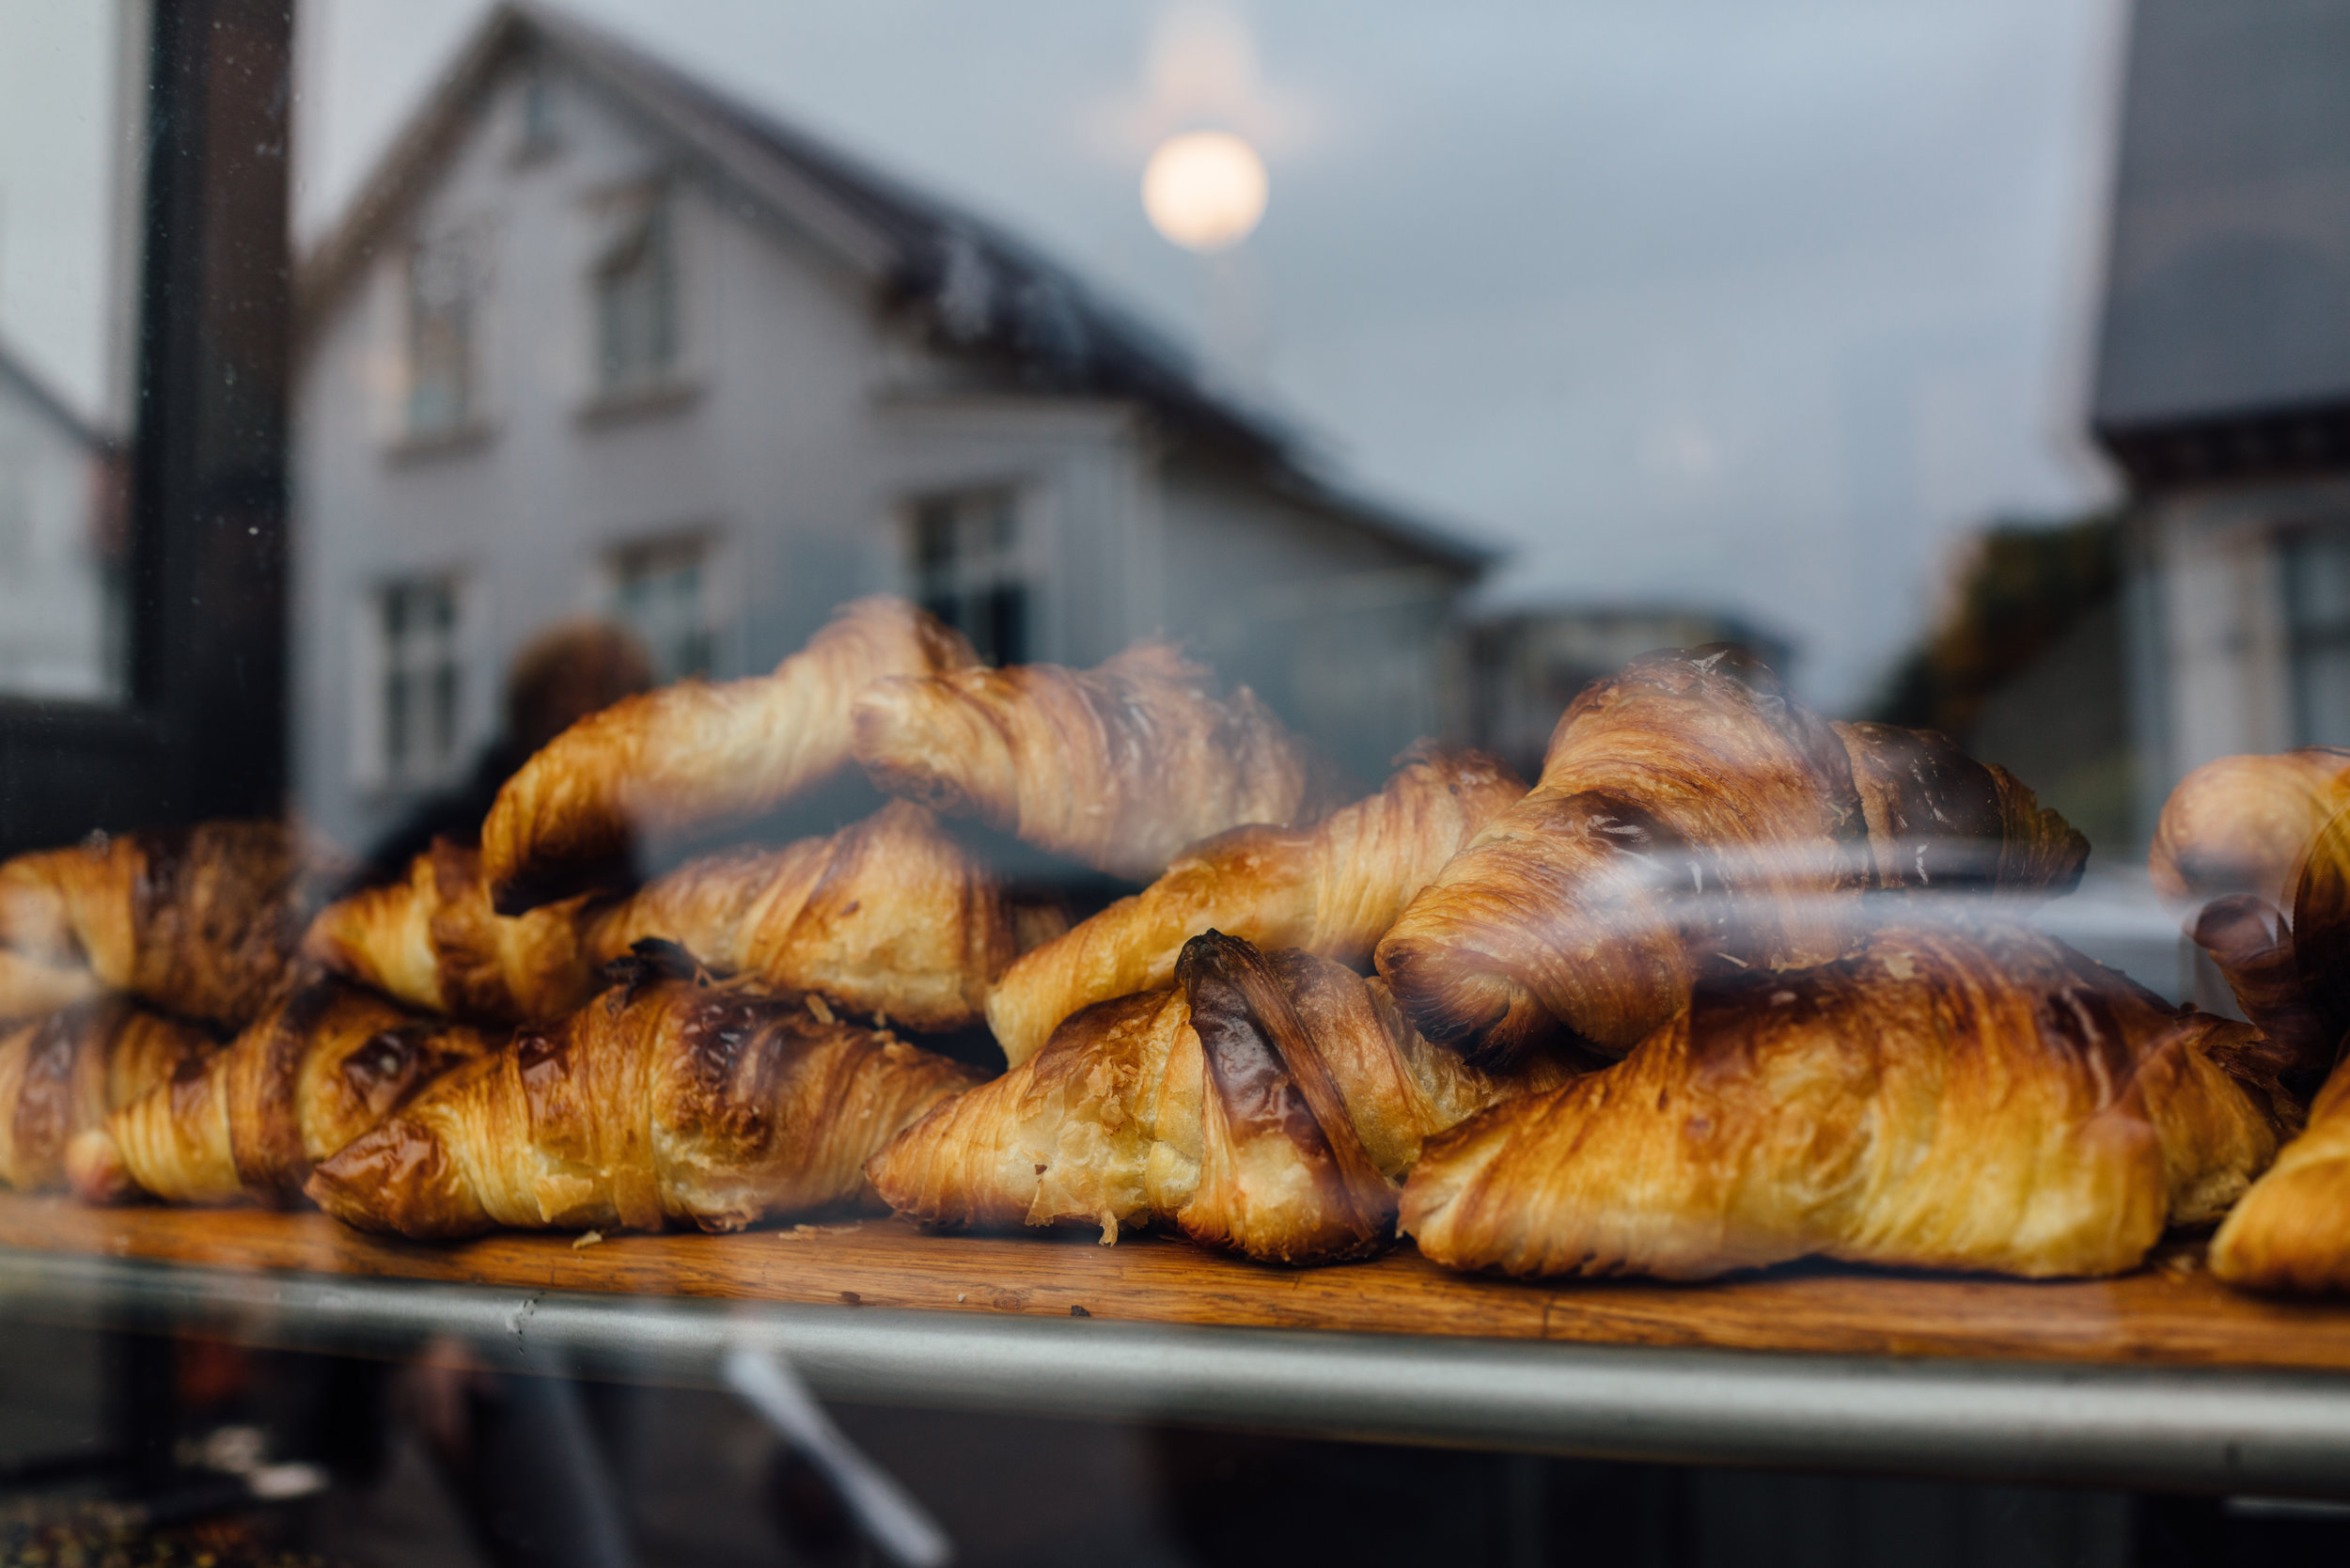 Croissants on display at Brauð & Co. in Reykjavík